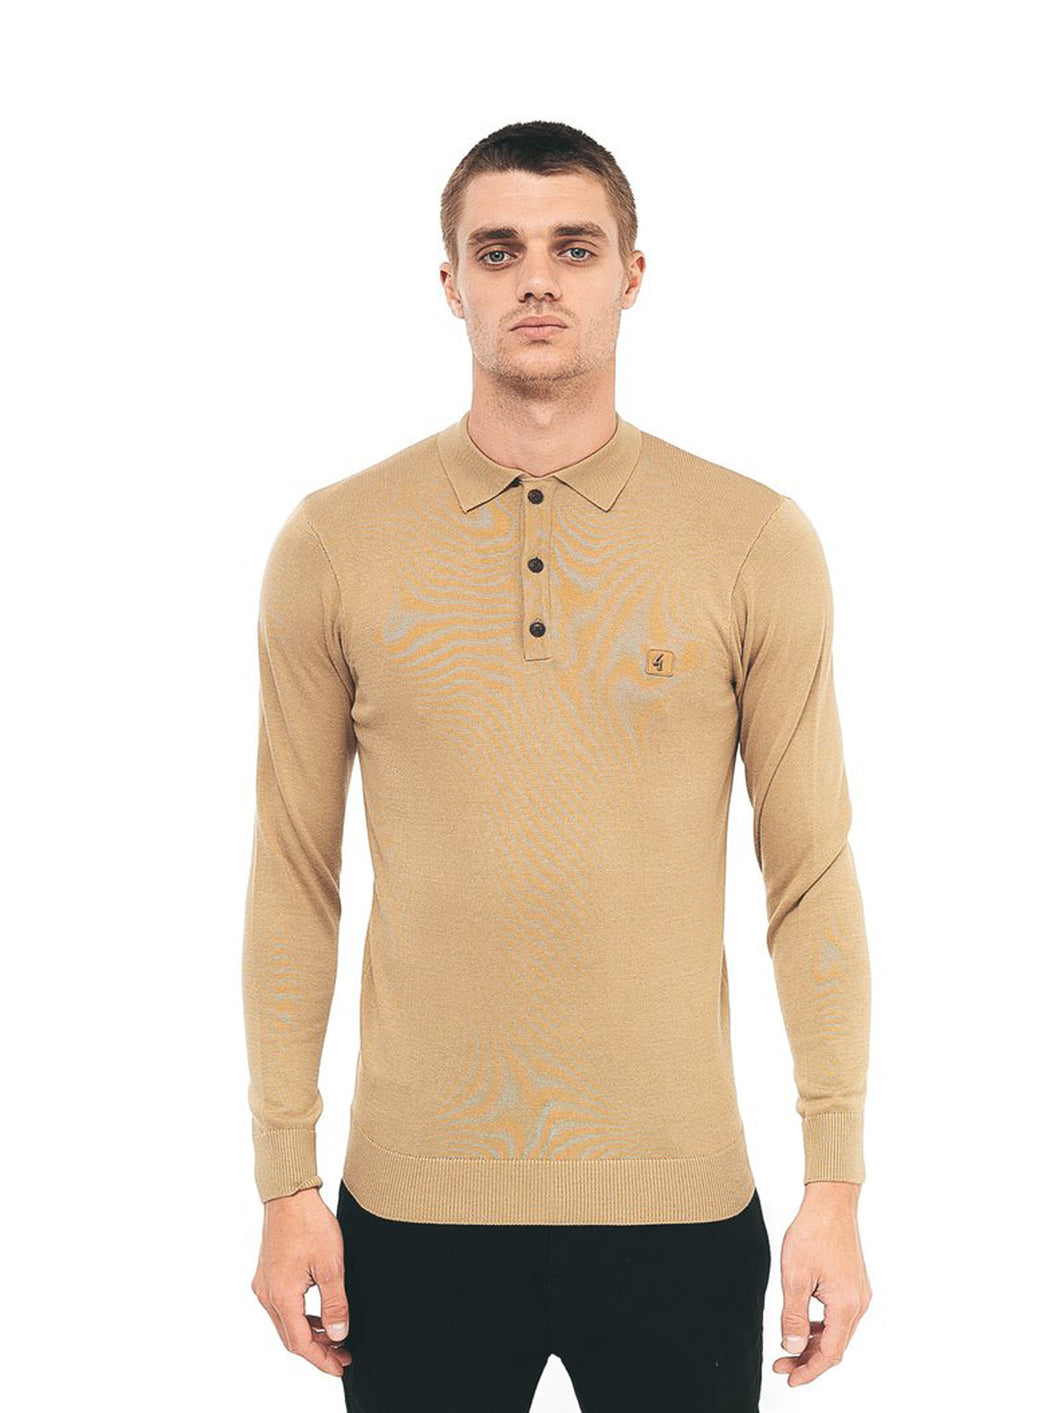 Gabicci Knitted 3 Button LS Polo Shirt - Fawn